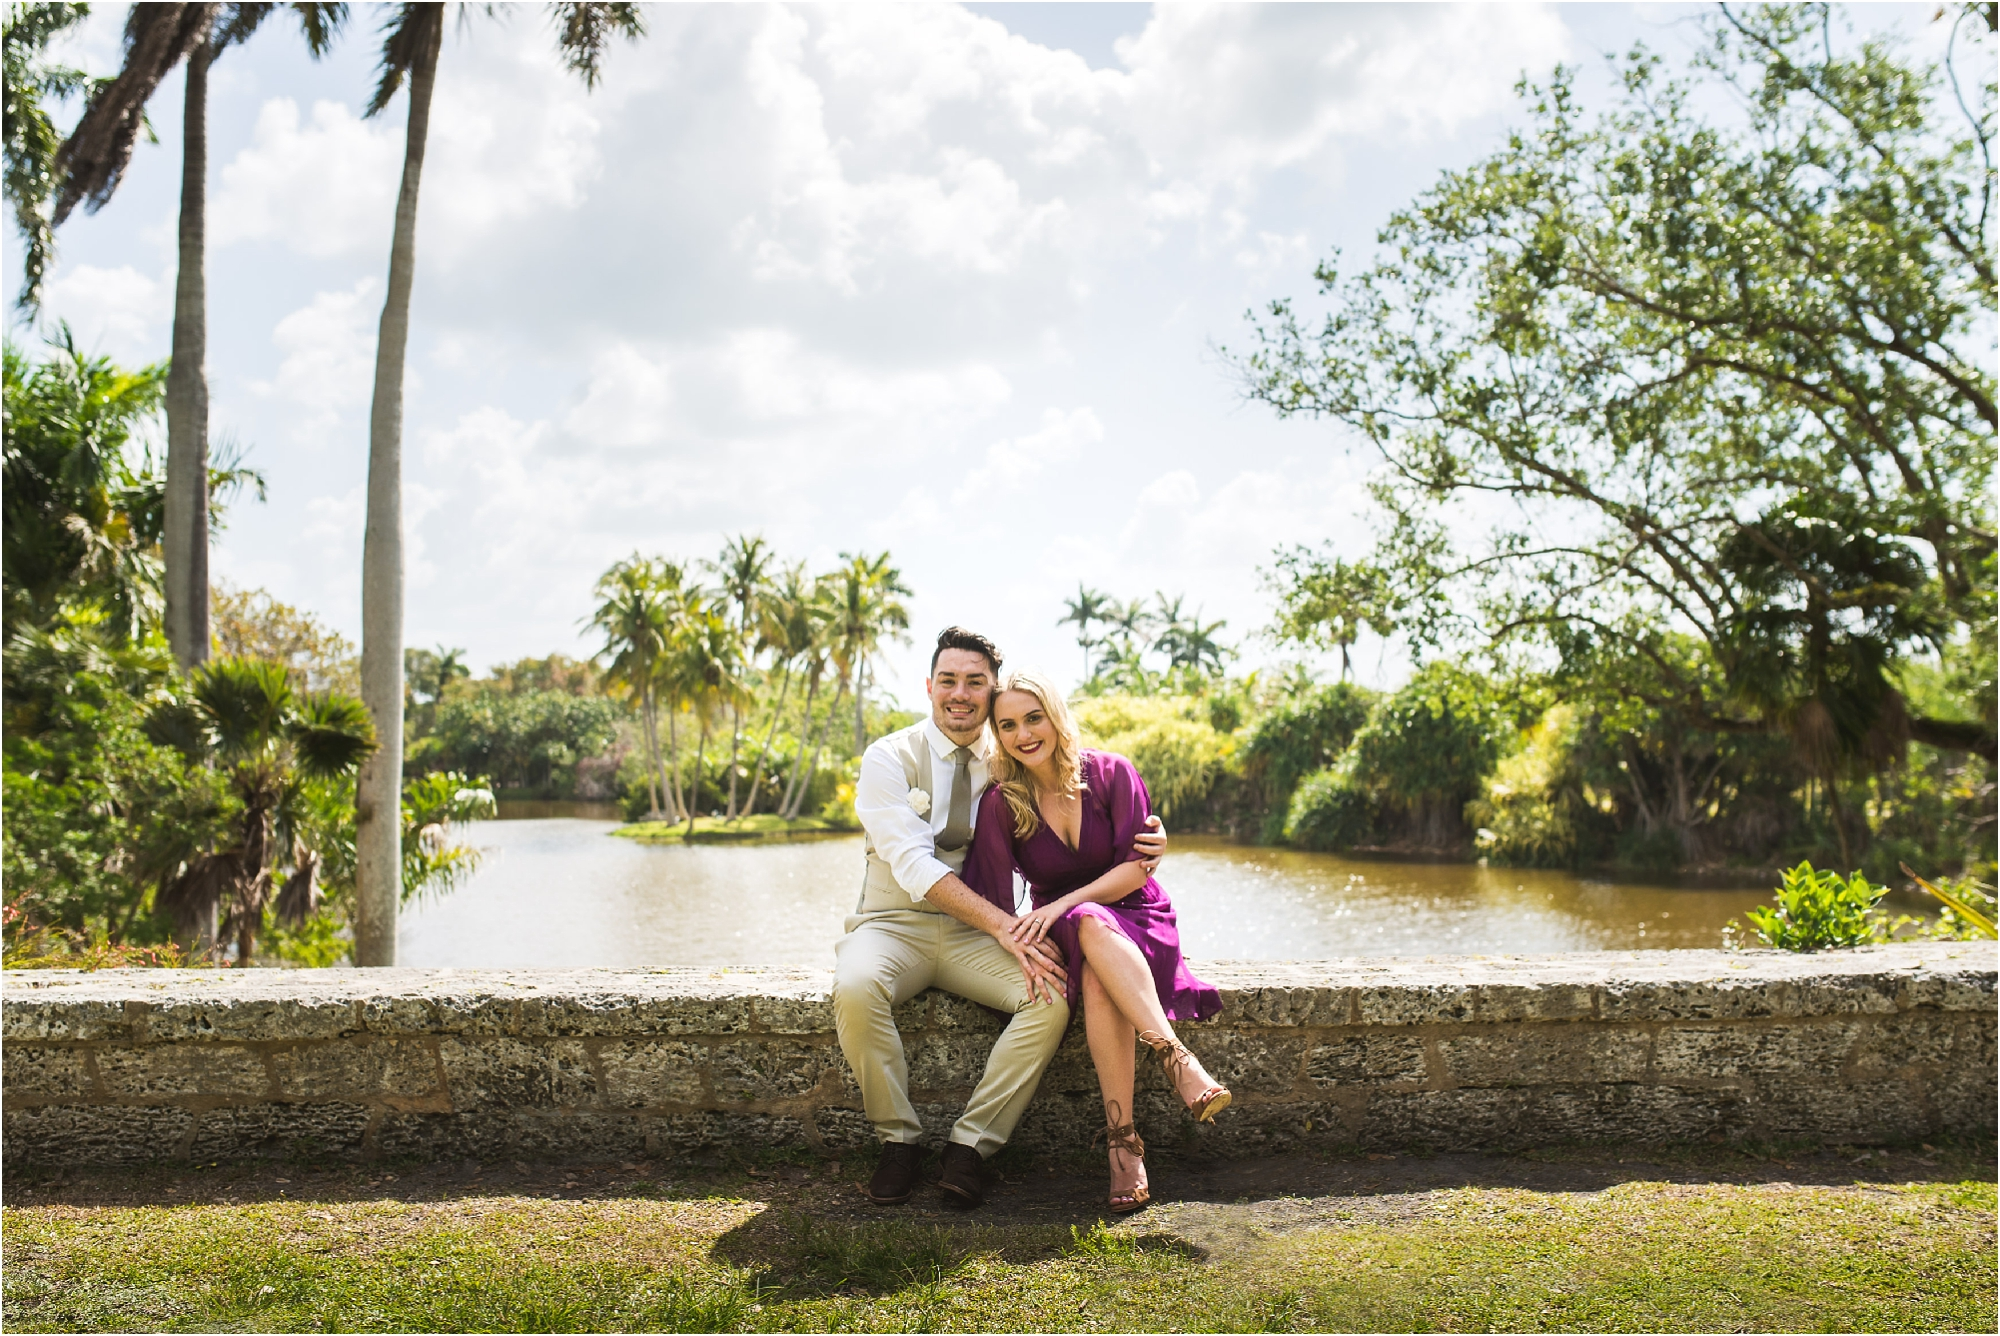 engagement-portraits-fairchild-tropical-botanic-garden-miami-photographer-jessenia-gonzalez_1112.jpg